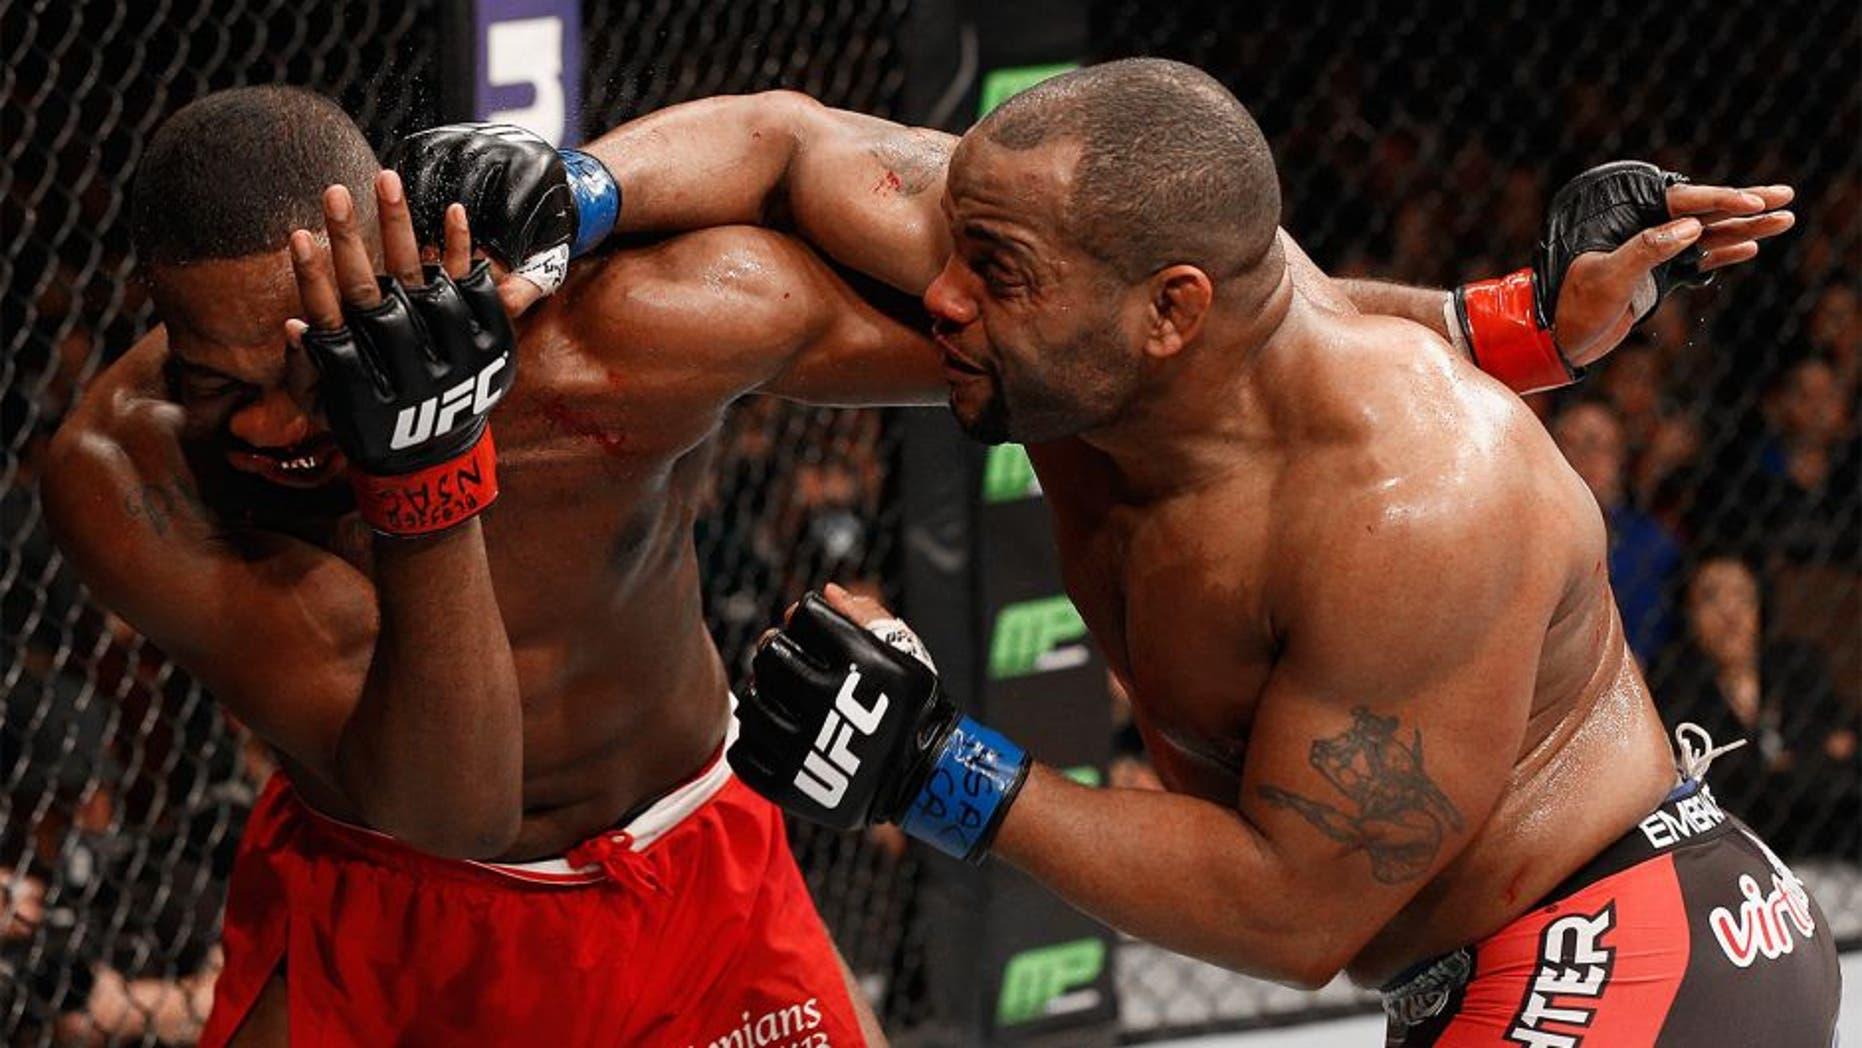 LAS VEGAS, NV - JANUARY 03: Daniel Cormier (R) punches Jon Jones (L) in their UFC light heavyweight championship bout during the UFC 182 event at the MGM Grand Garden Arena on January 3, 2015 in Las Vegas, Nevada. (Photo by Josh Hedges/Zuffa LLC/Zuffa LLC via Getty Images)